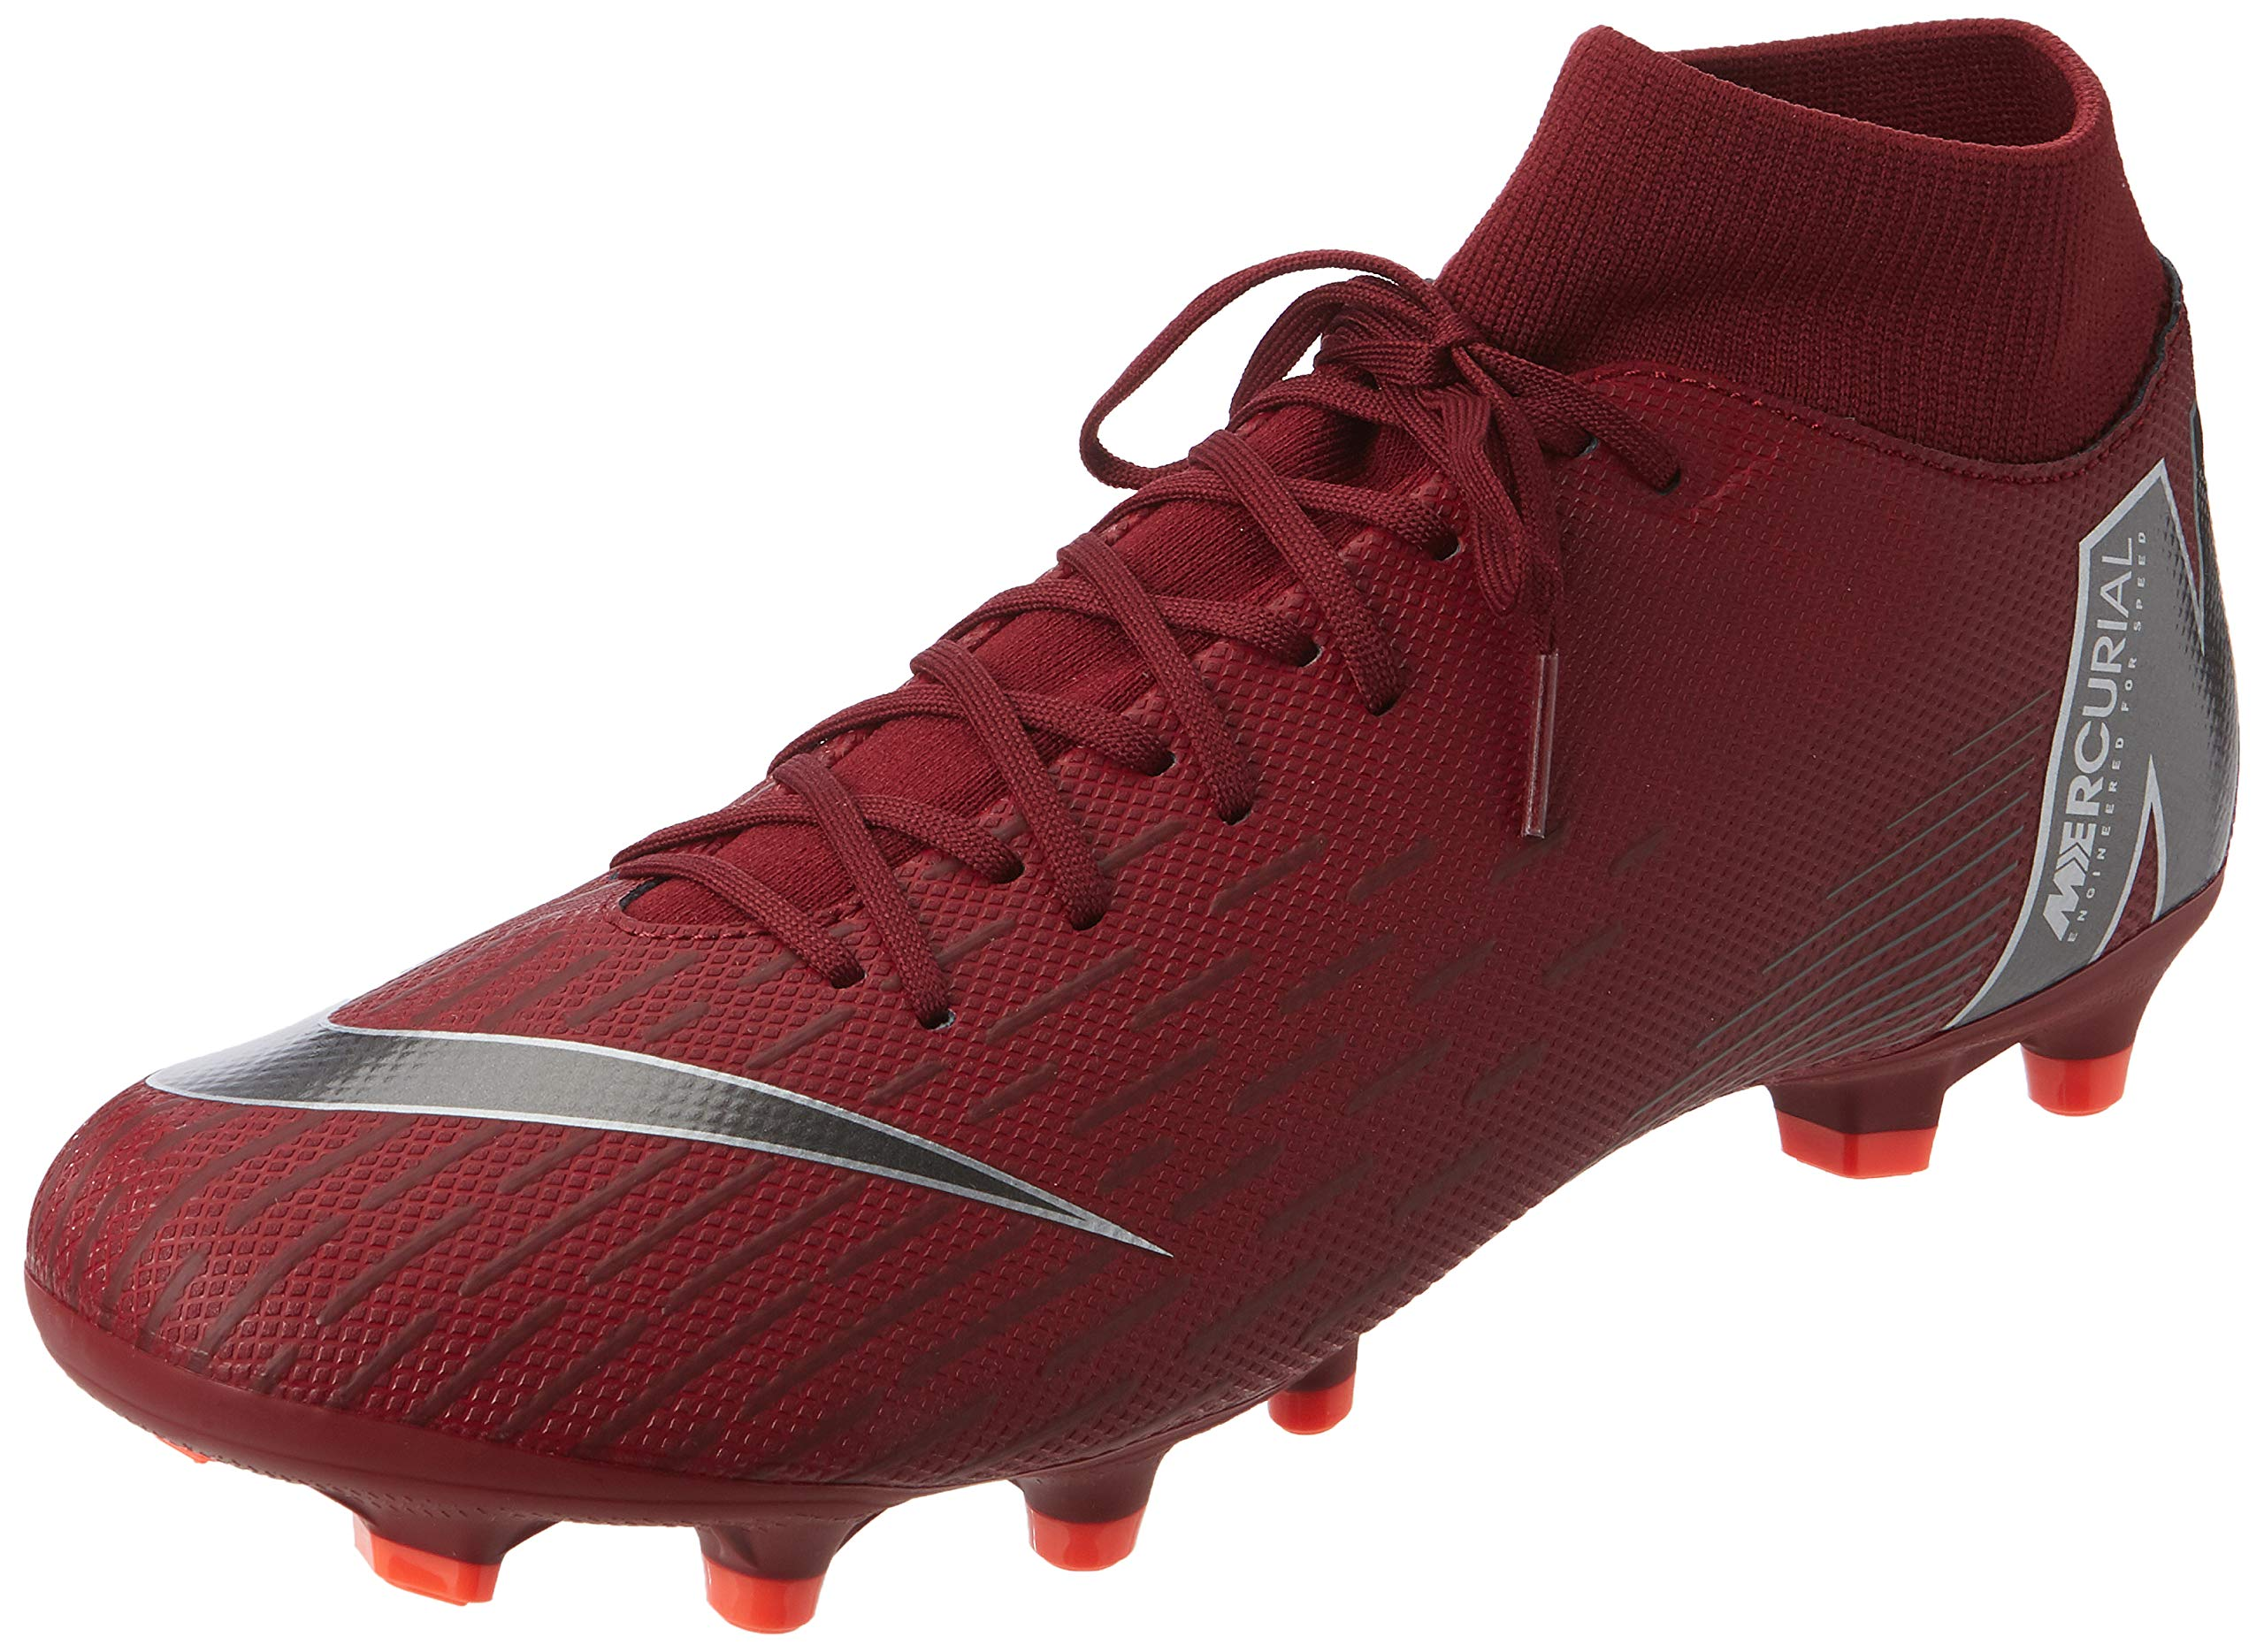 Nike Mercurial Superfly 6 Academy MG Soccer Cleat (Team Red) (Men's 8.5/Women's 10)